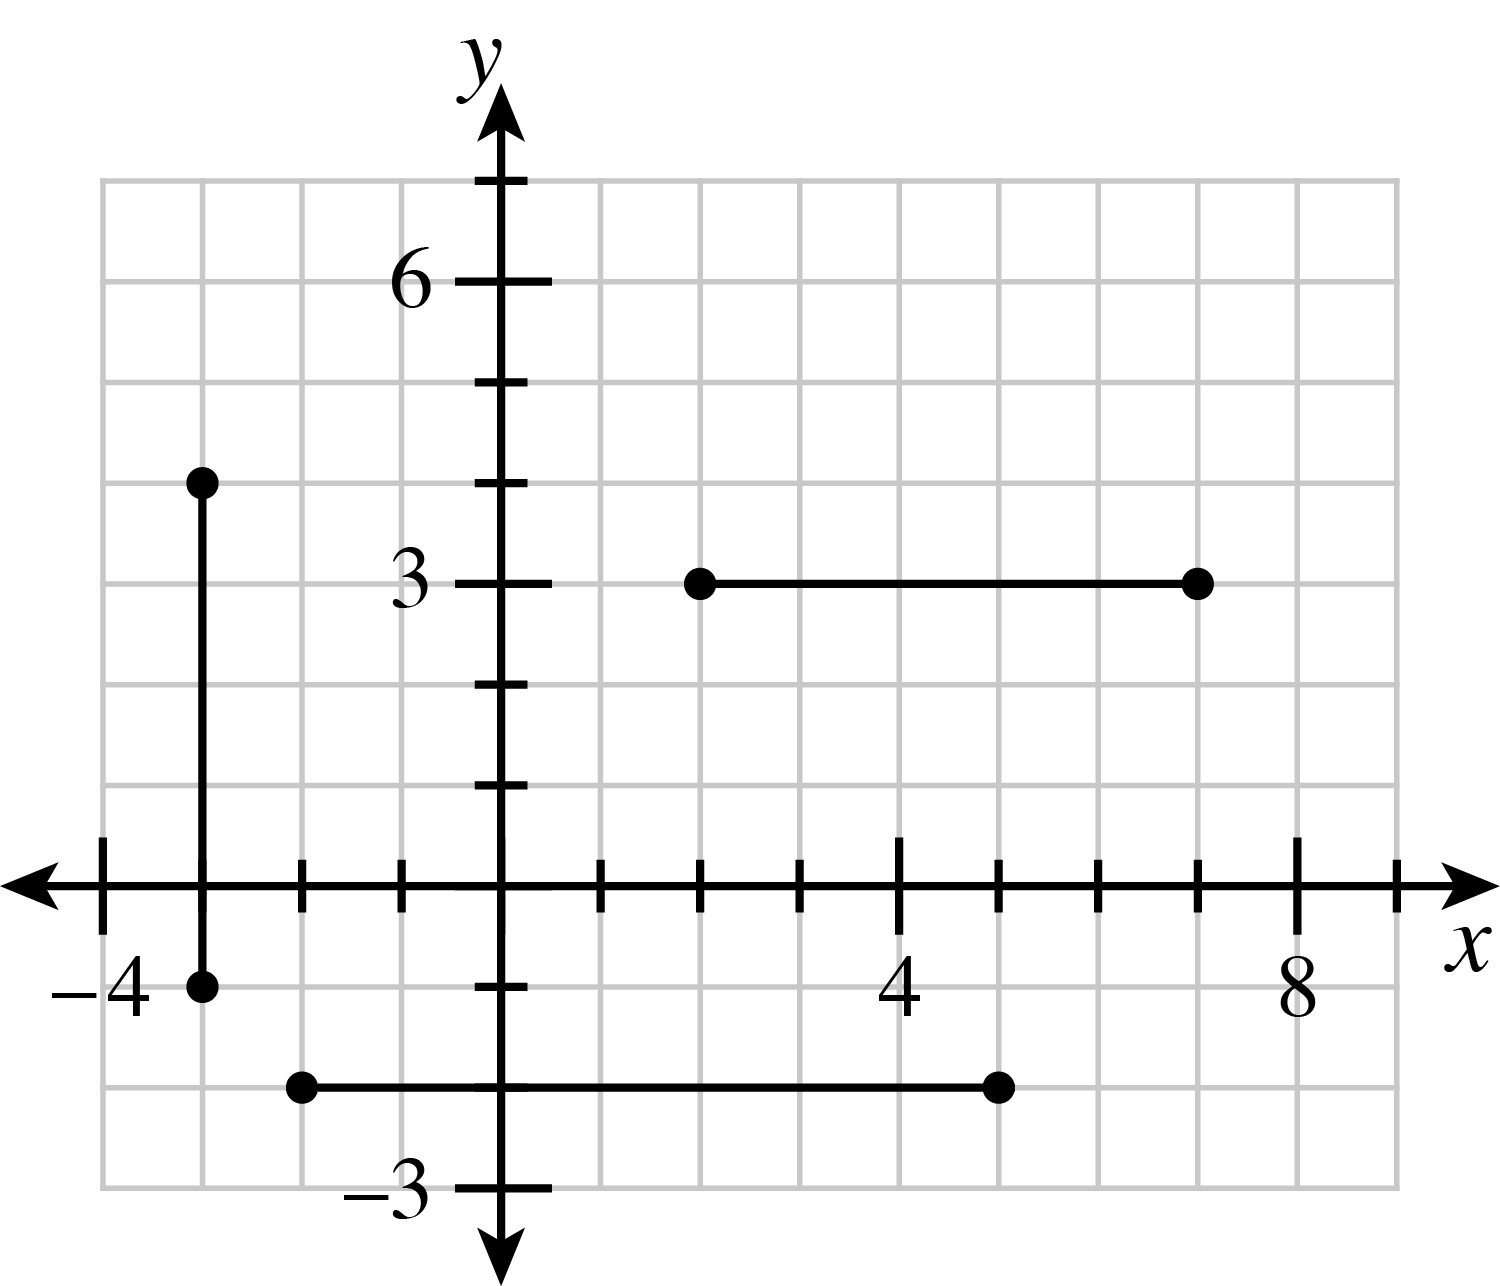 Three line segments are graphed. Line segment A has points (2, comma 3), and (7, comma 3). Line segment B has points (negative 3, comma 4), and (negative 3, comma negative 1). Line segment C has points (negative 2, comma negative 2), and (5, comma negative 2)